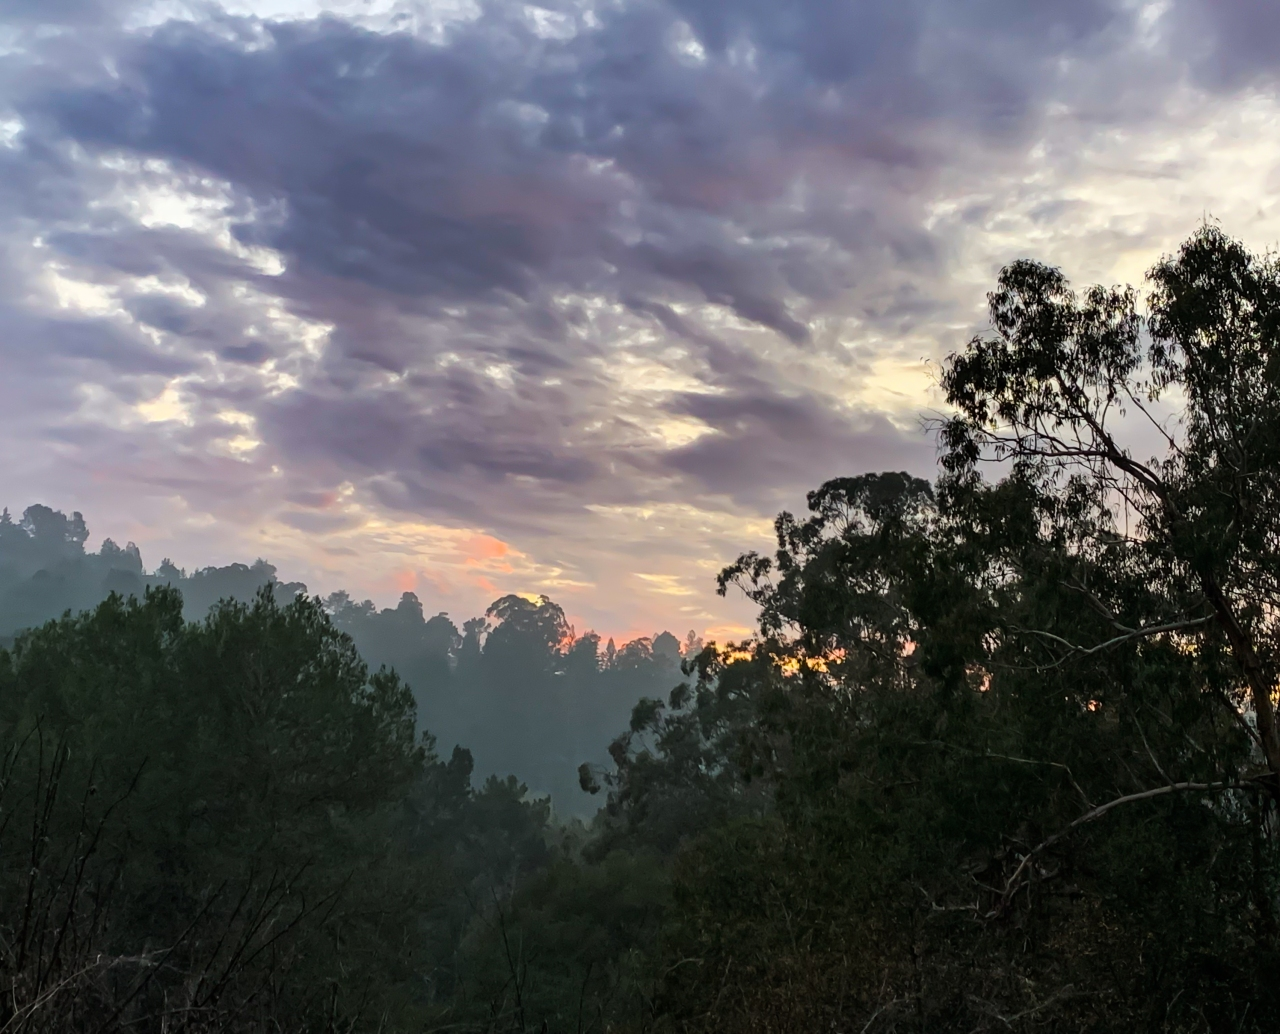 Tilden Park – sunset